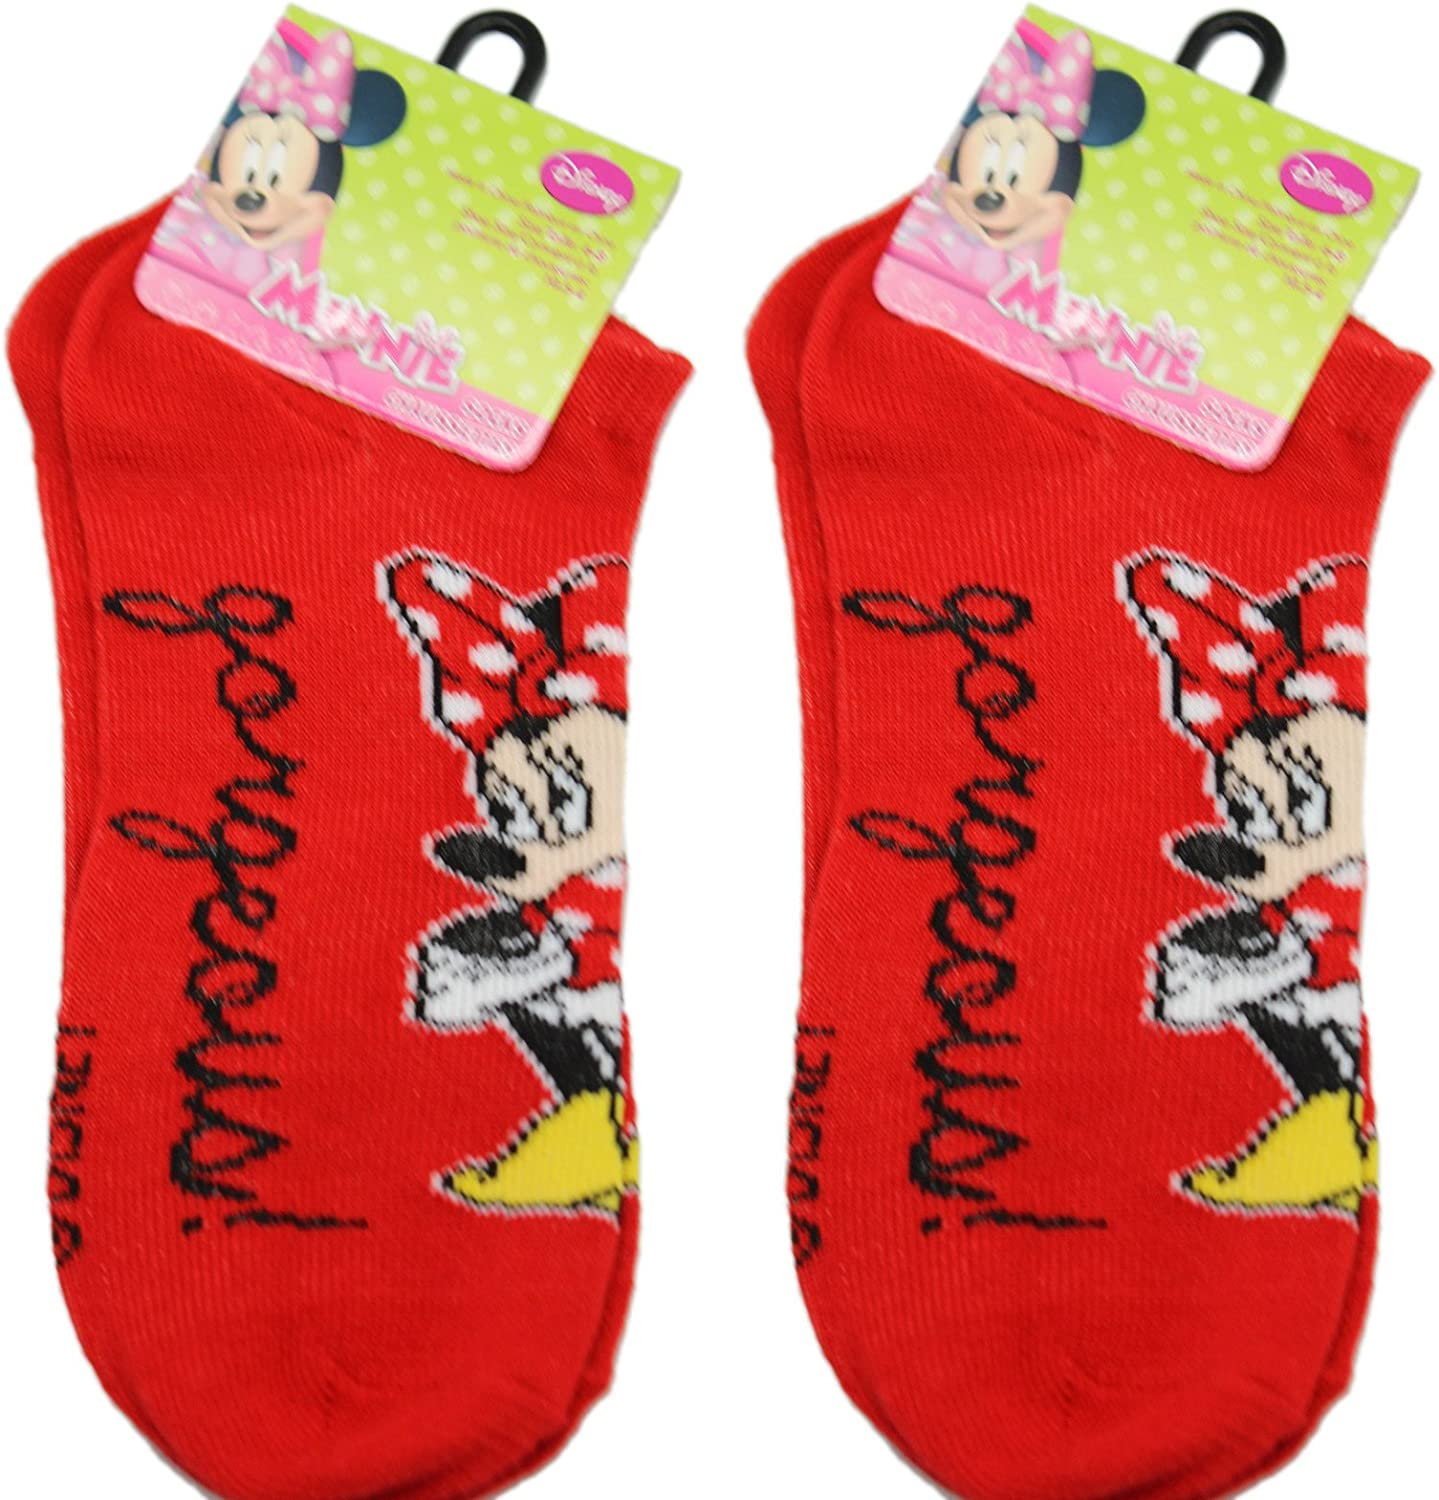 2 Pair Red Gorgeous Minnie Mouse Socks (Size 68)